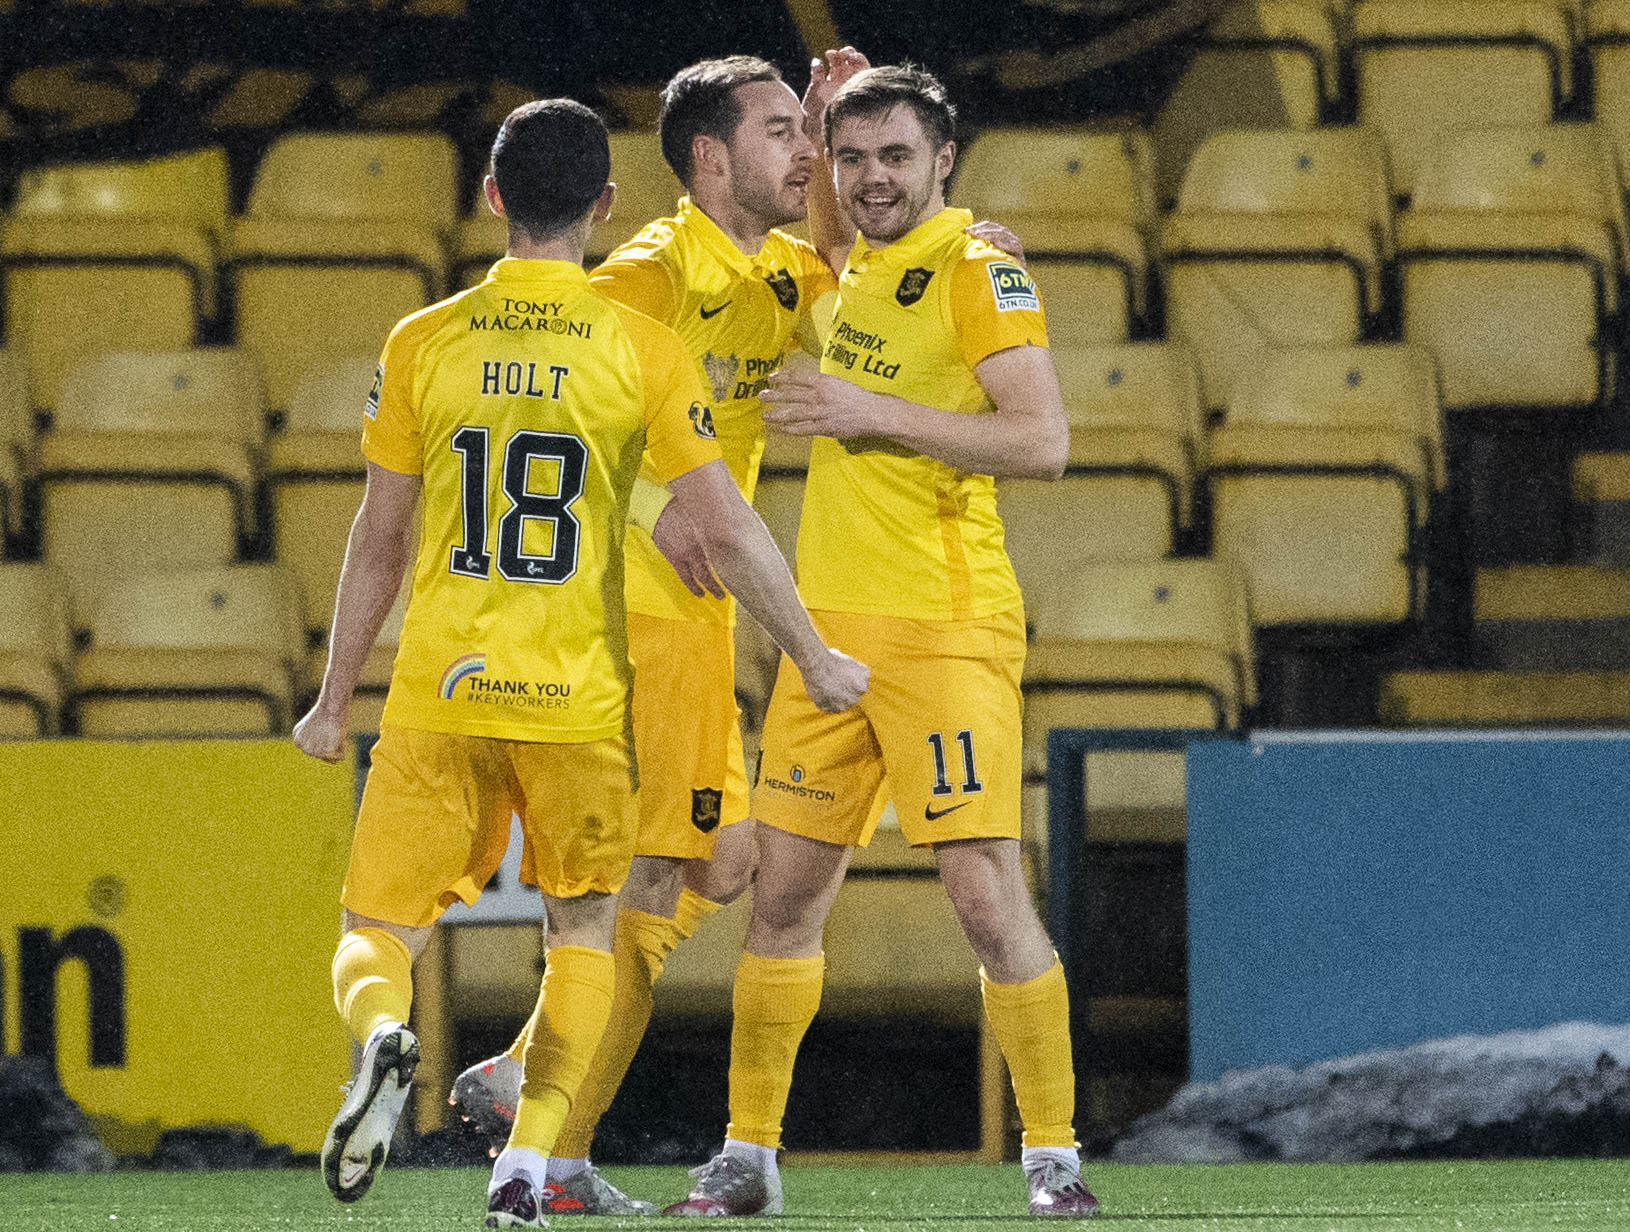 Livingston 3-1 Ross County: Forrest and Hamilton seal win